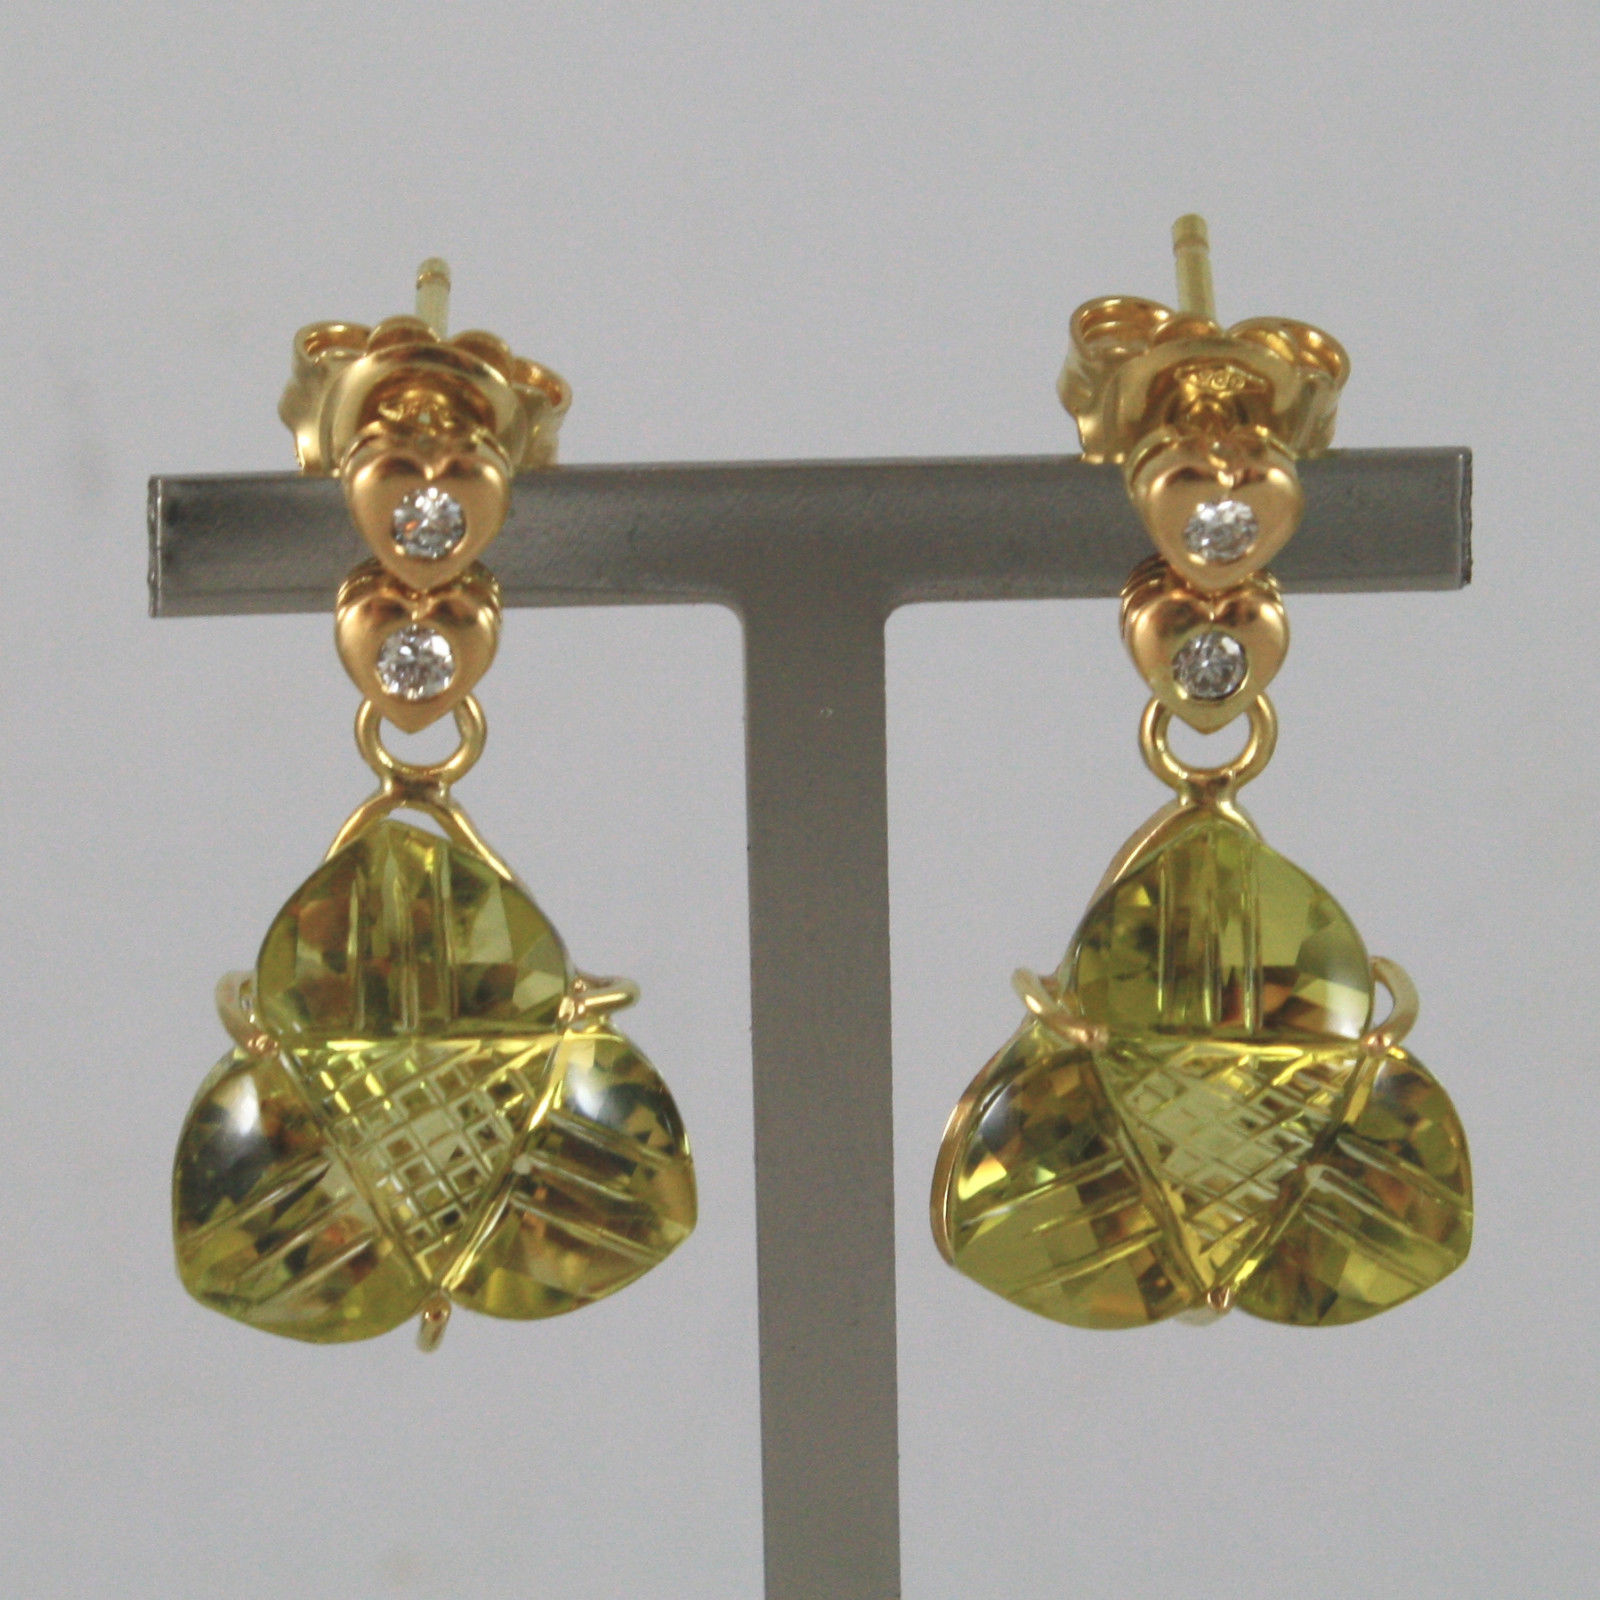 SOLID 18K YELLOW GOLD EARRINGS, WITH DIAMONDS AND LEMON QUARTZ, MADE IN ITALY